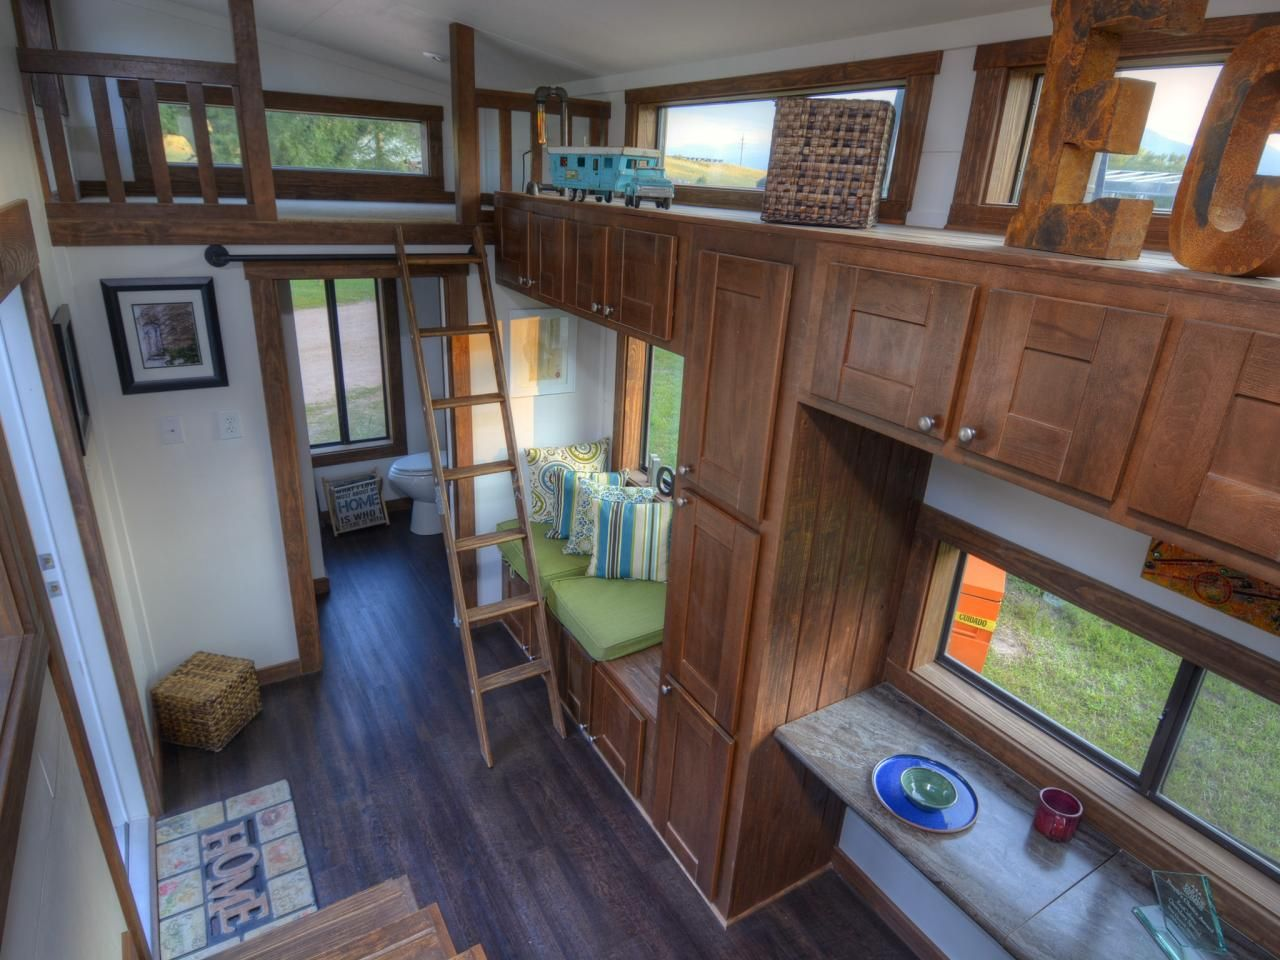 Tiny home interiors - 6 Tiny Houses That Squeeze Function Into Every Square Foot